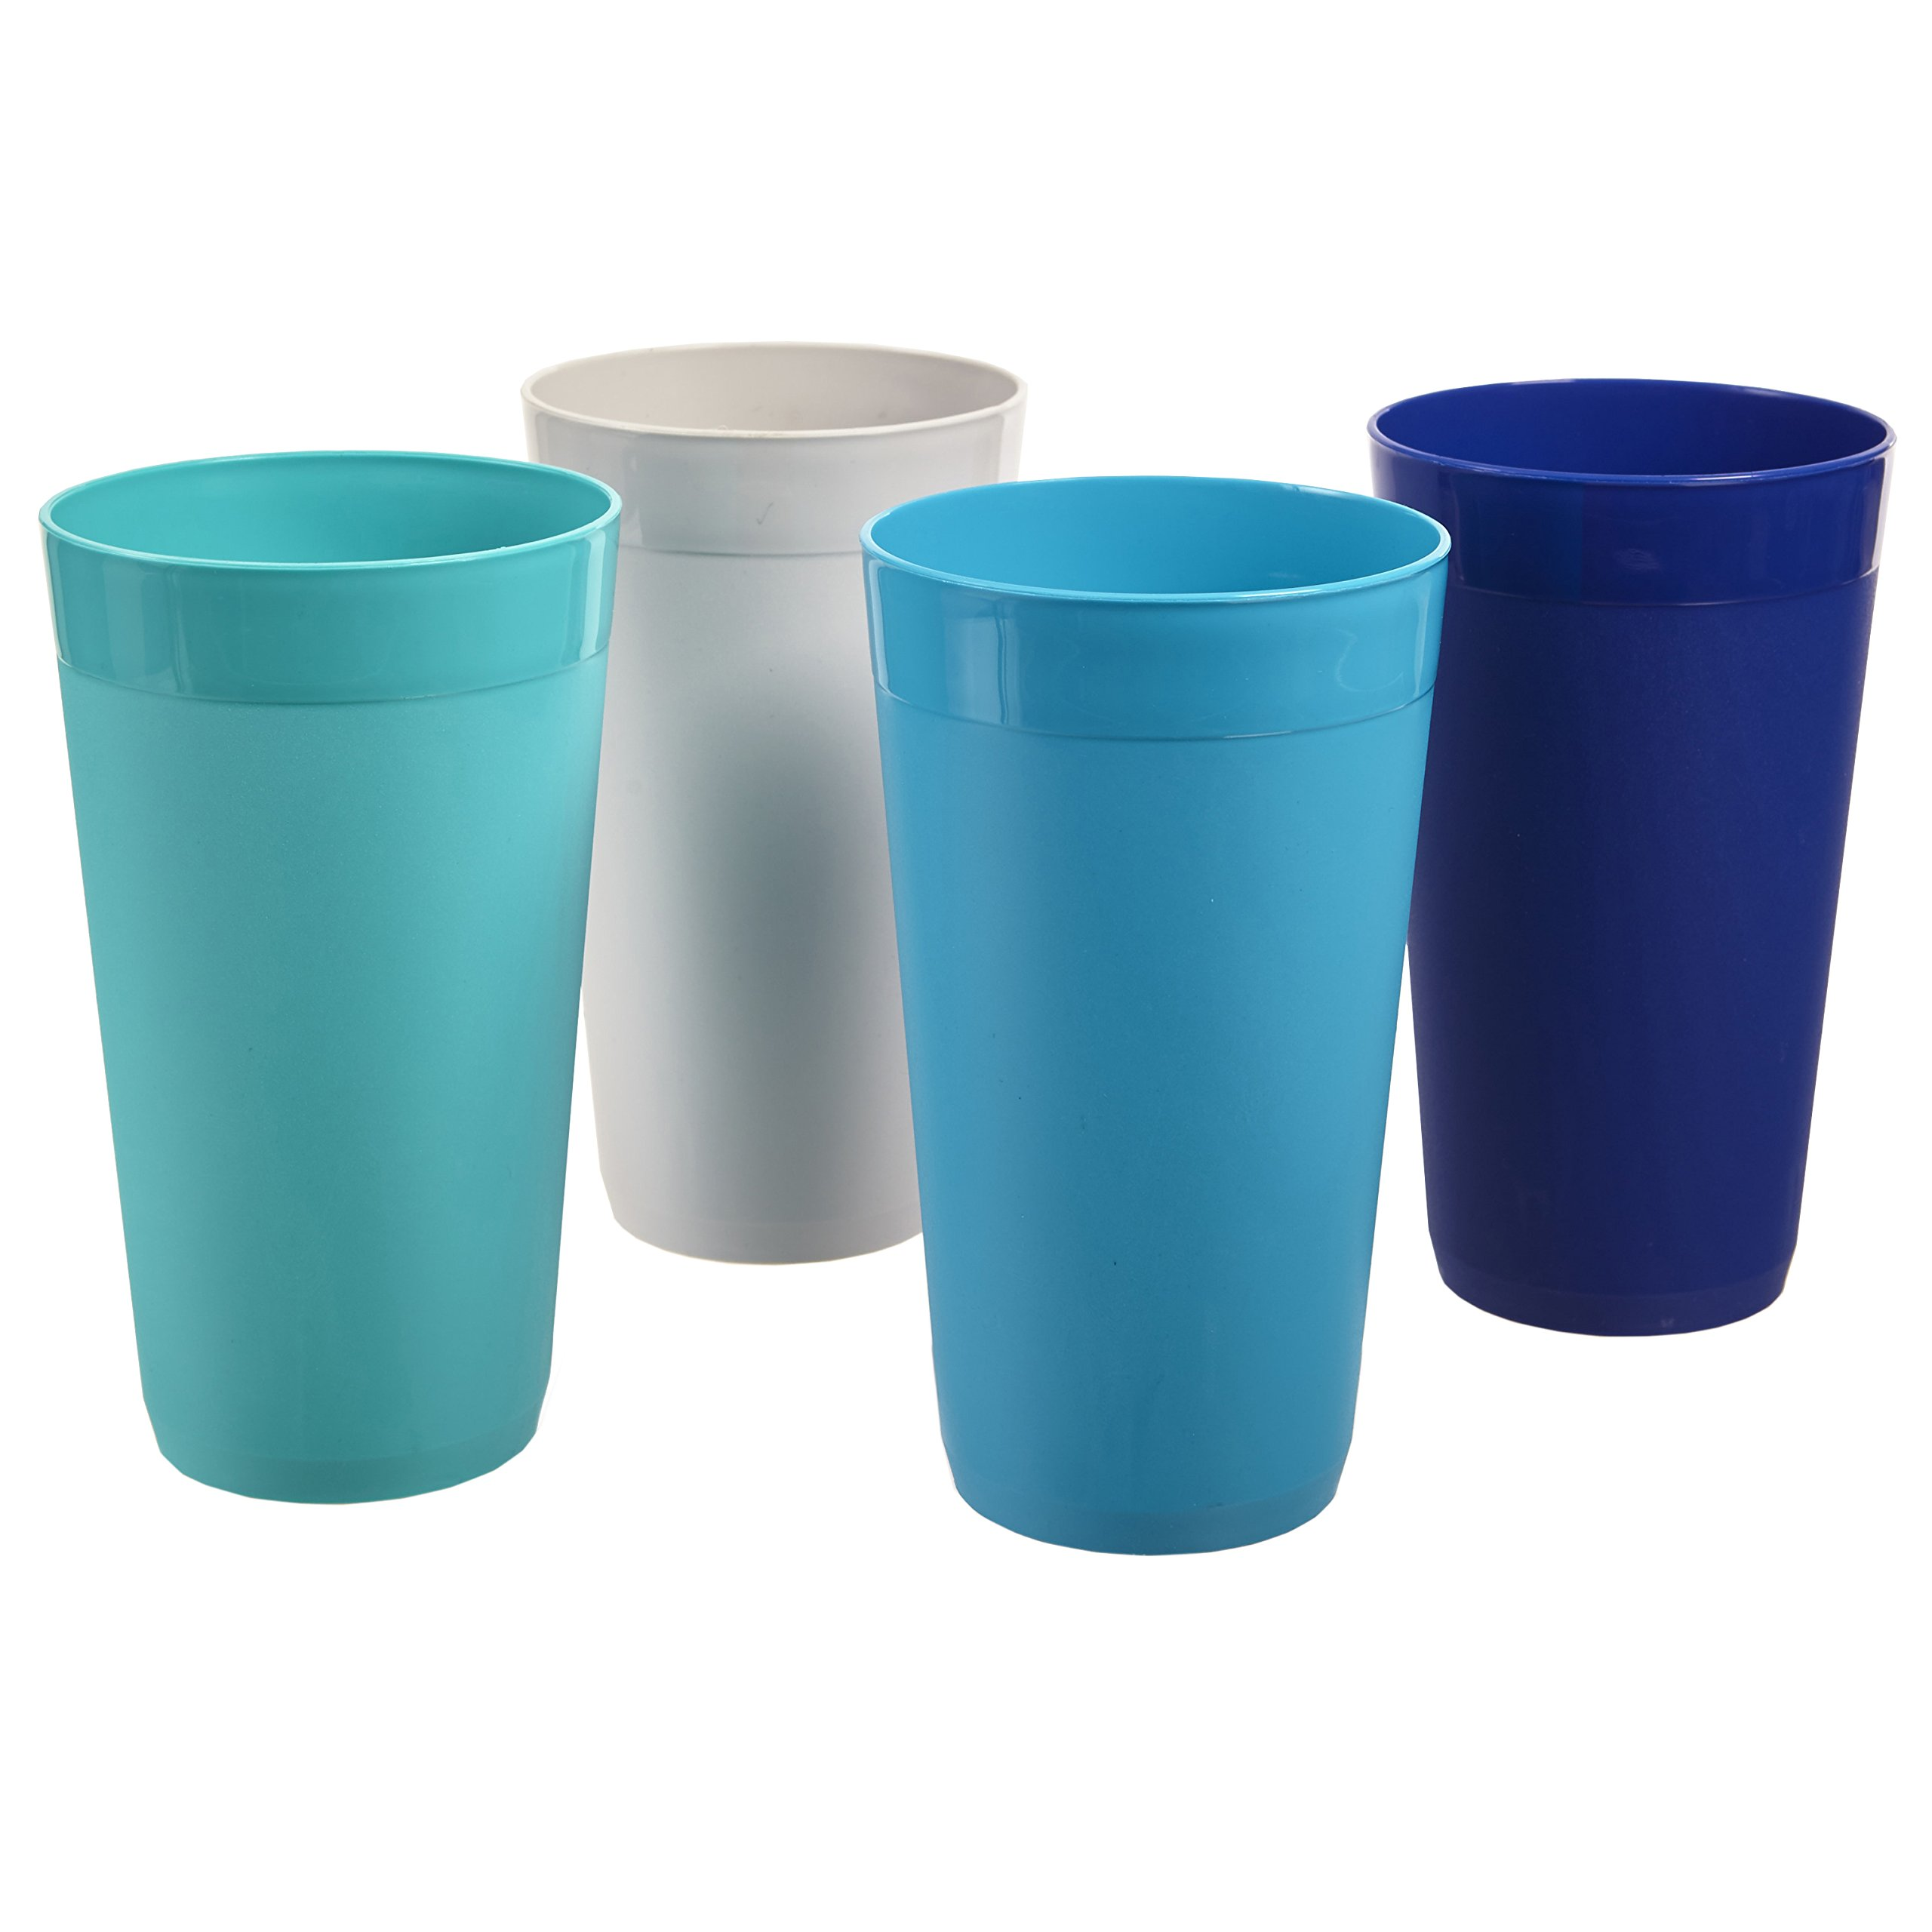 US Acrylic Newport 20-ounce Unbreakable Plastic Tumblers   set of 12 in 4 Coastal Colors by US Acrylic (Image #5)